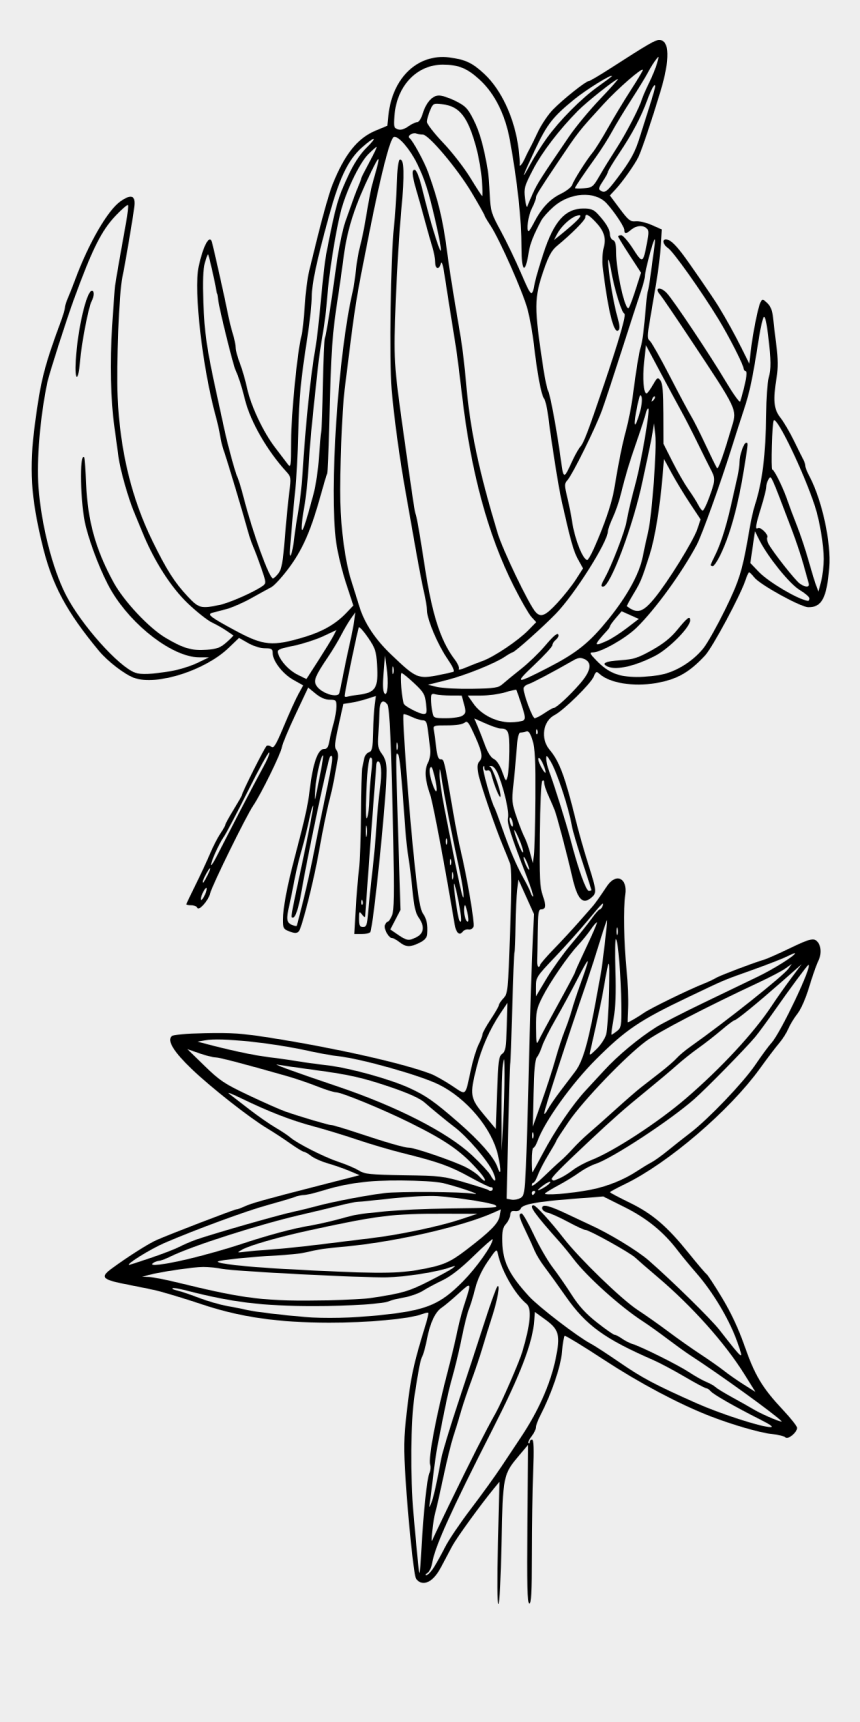 sego lily clipart, Cartoons - Lily Clipart Black And White - Bleeding Heart Flowers Drawing Line